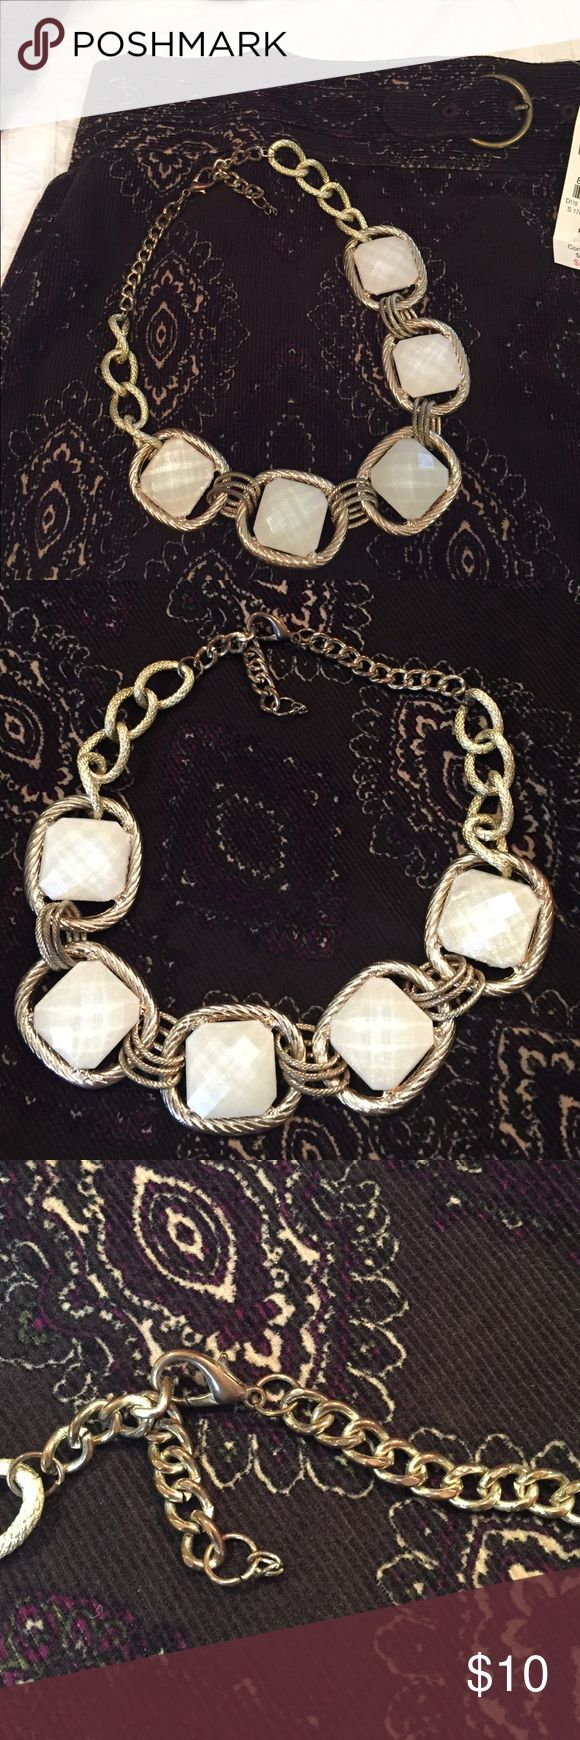 Gold and creamy white statement necklace Goes with everything!! Looks great with any color combo. Statement necklaces complete the look every time. A little discoloration on the back chain and on the corner of one of the squares, but honestly not noticeable. Bundle and save!! Jewelry Necklaces